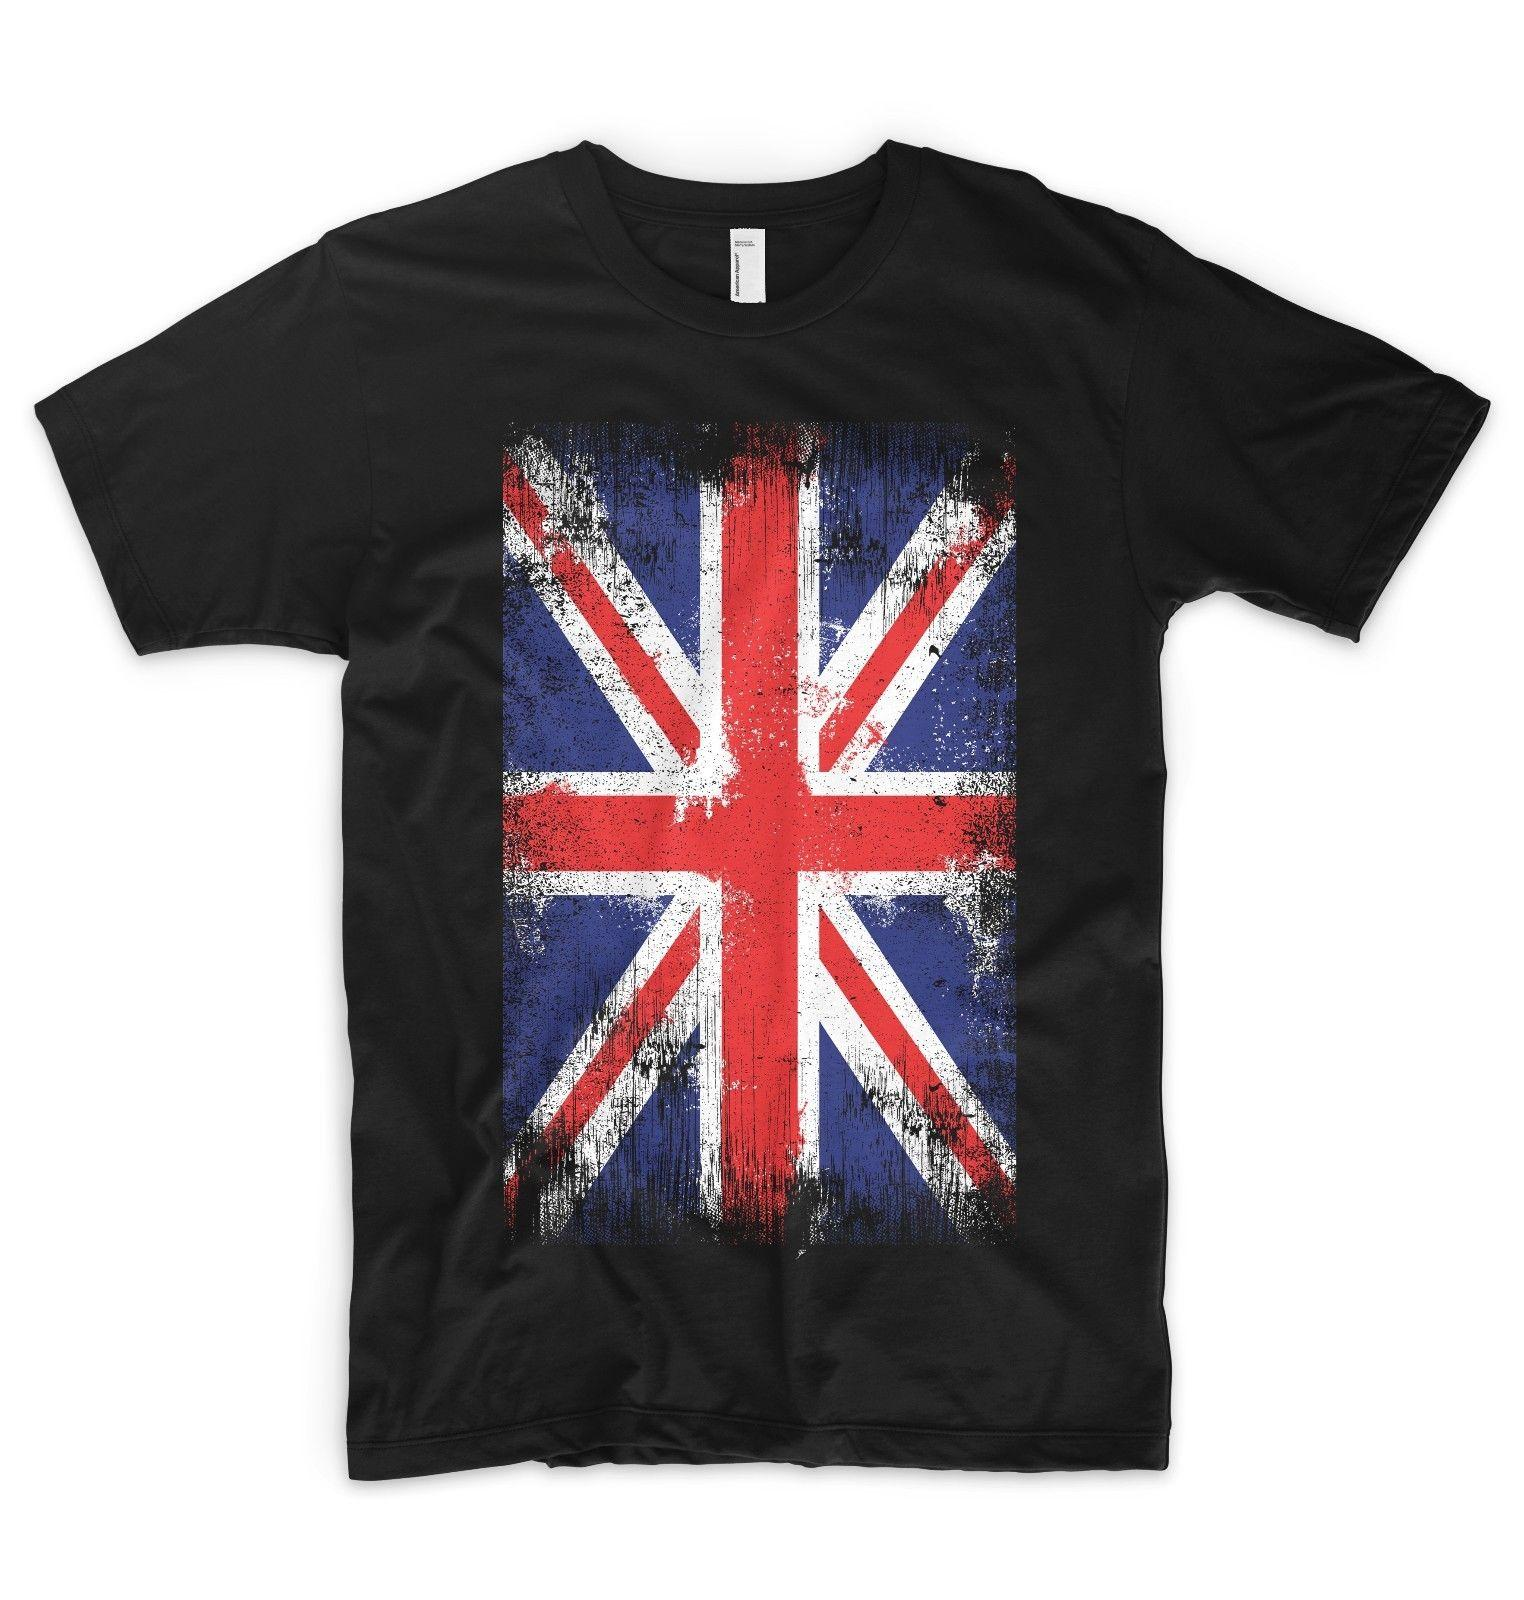 Union Jack T Shirt UK British Flag Great Britain United Kingdom England  London Trendy T Shirts For Men Shirts Funny From Shop4ever 00a672da65c2